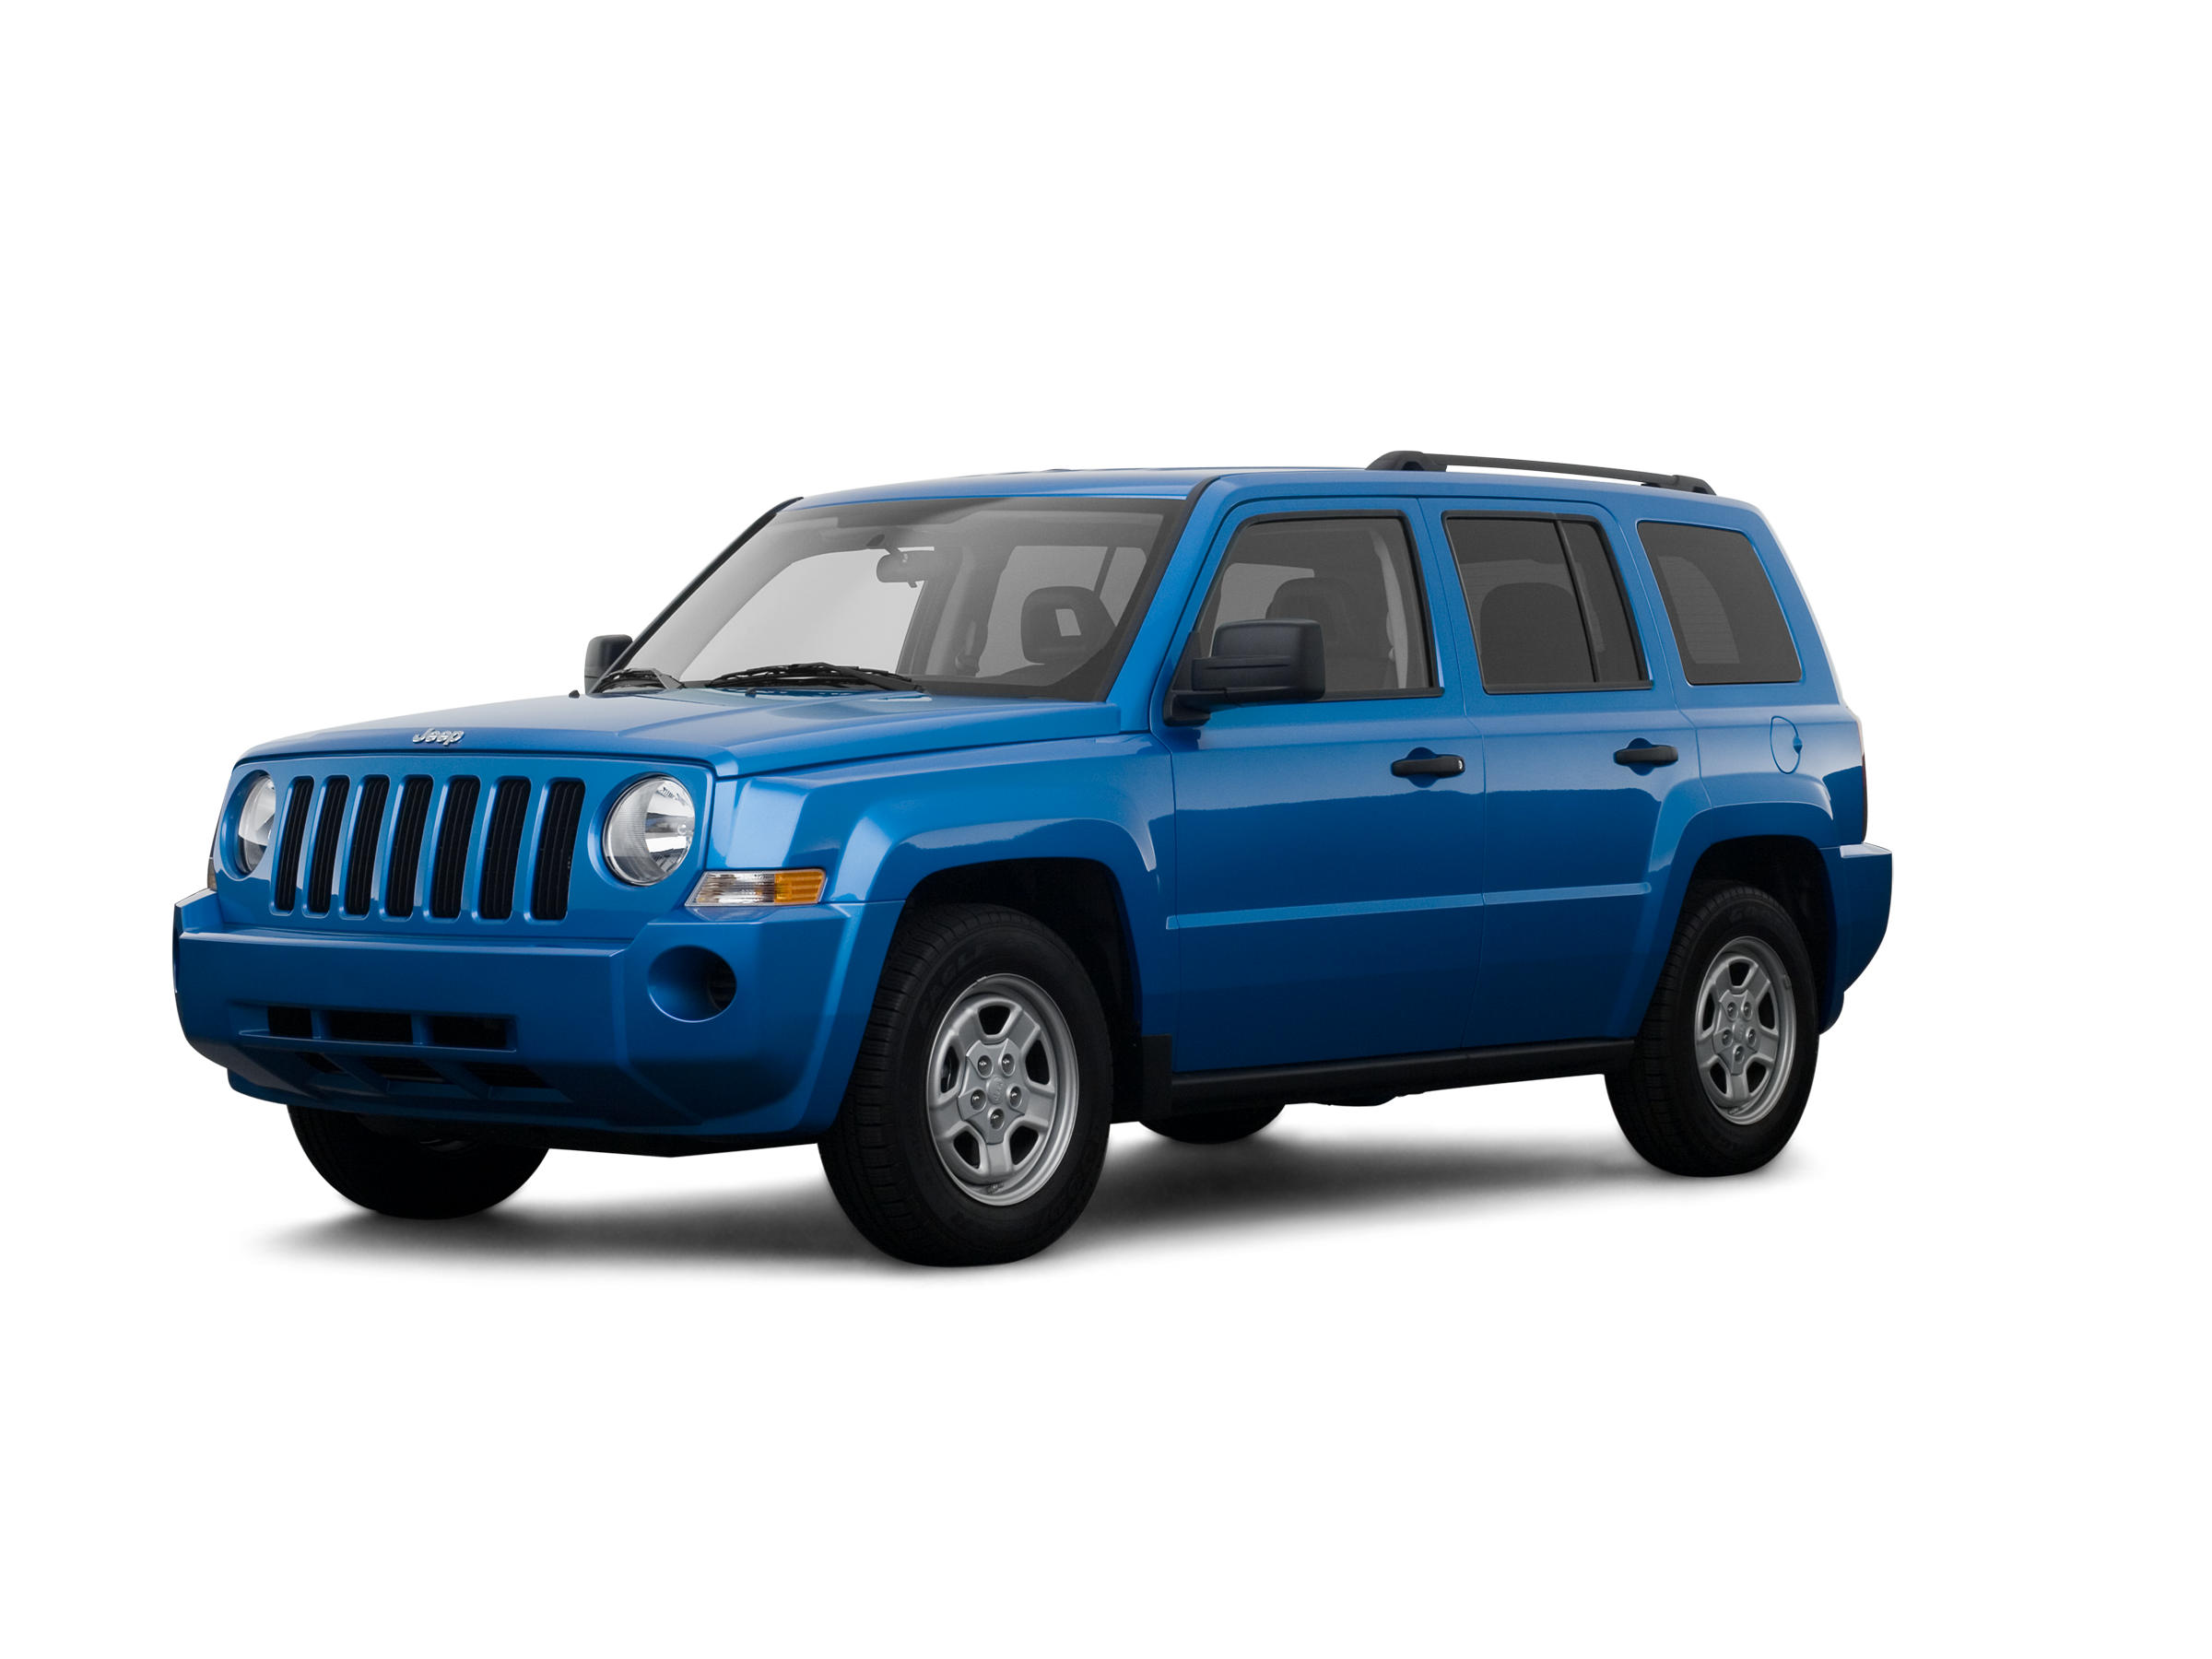 2008 Jeep Patriot Values Cars For Sale Kelley Blue Book